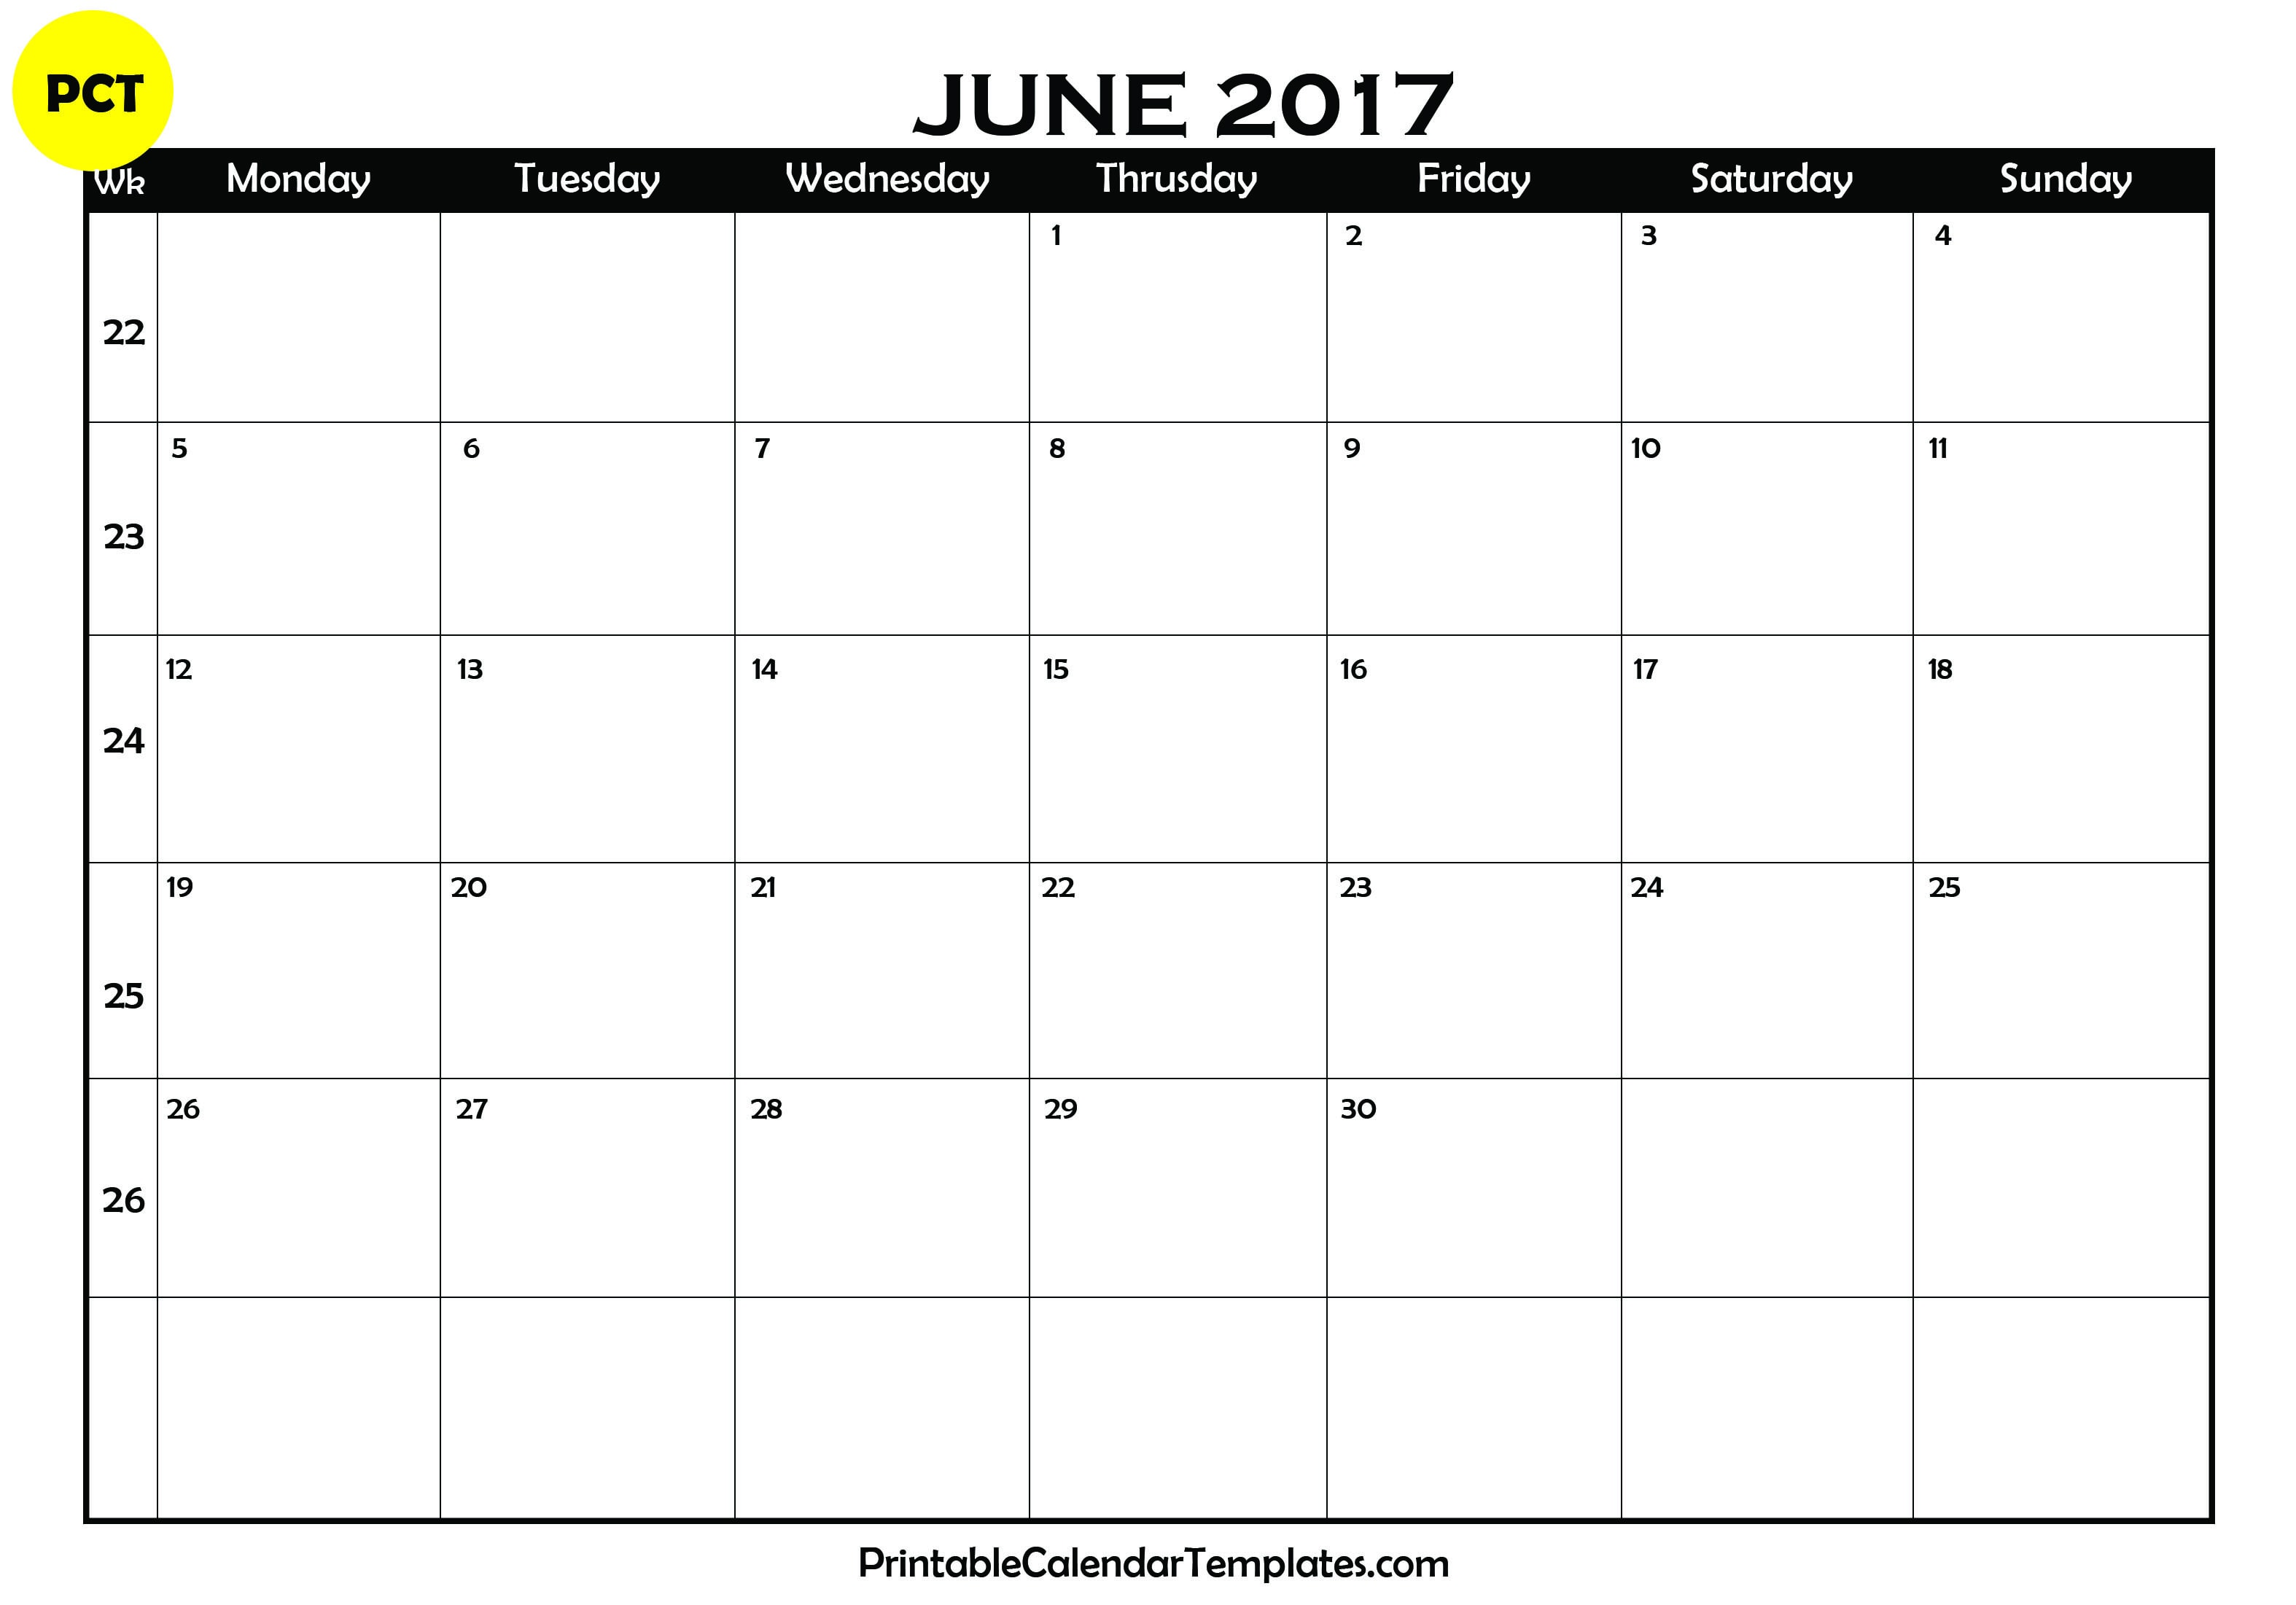 ... calendar printable, june 2017 calendar with holidays, june 2017 blank